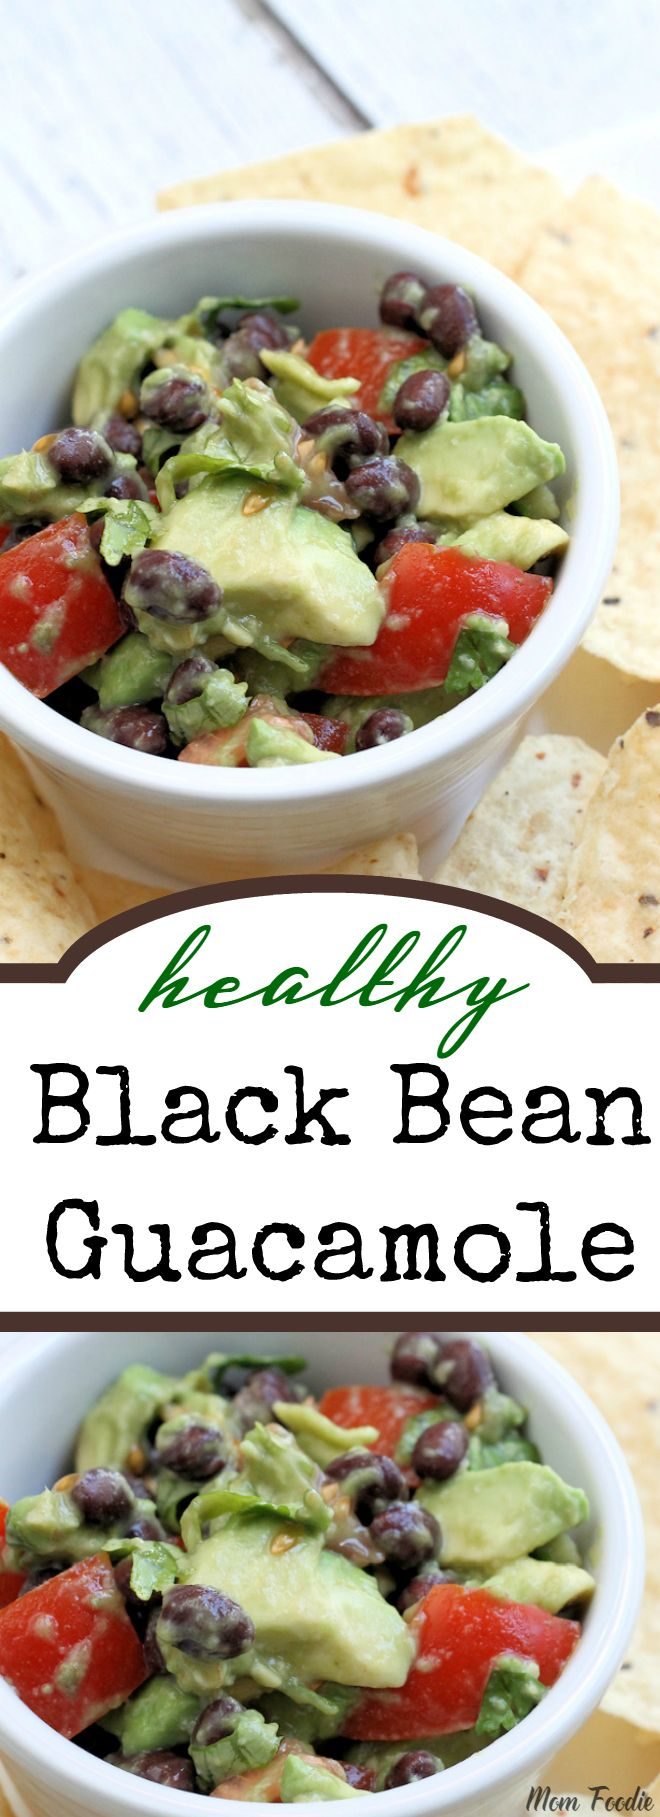 This healthy Black Bean Guacamole is a super quick way to prepare a light vegan lunch, just add a few chips. It is also a great topping for meats, grilled veggies, veggie burgers or tex-mex meals. Plenty of unsaturated fat & fiber to keep you full throughout the day.